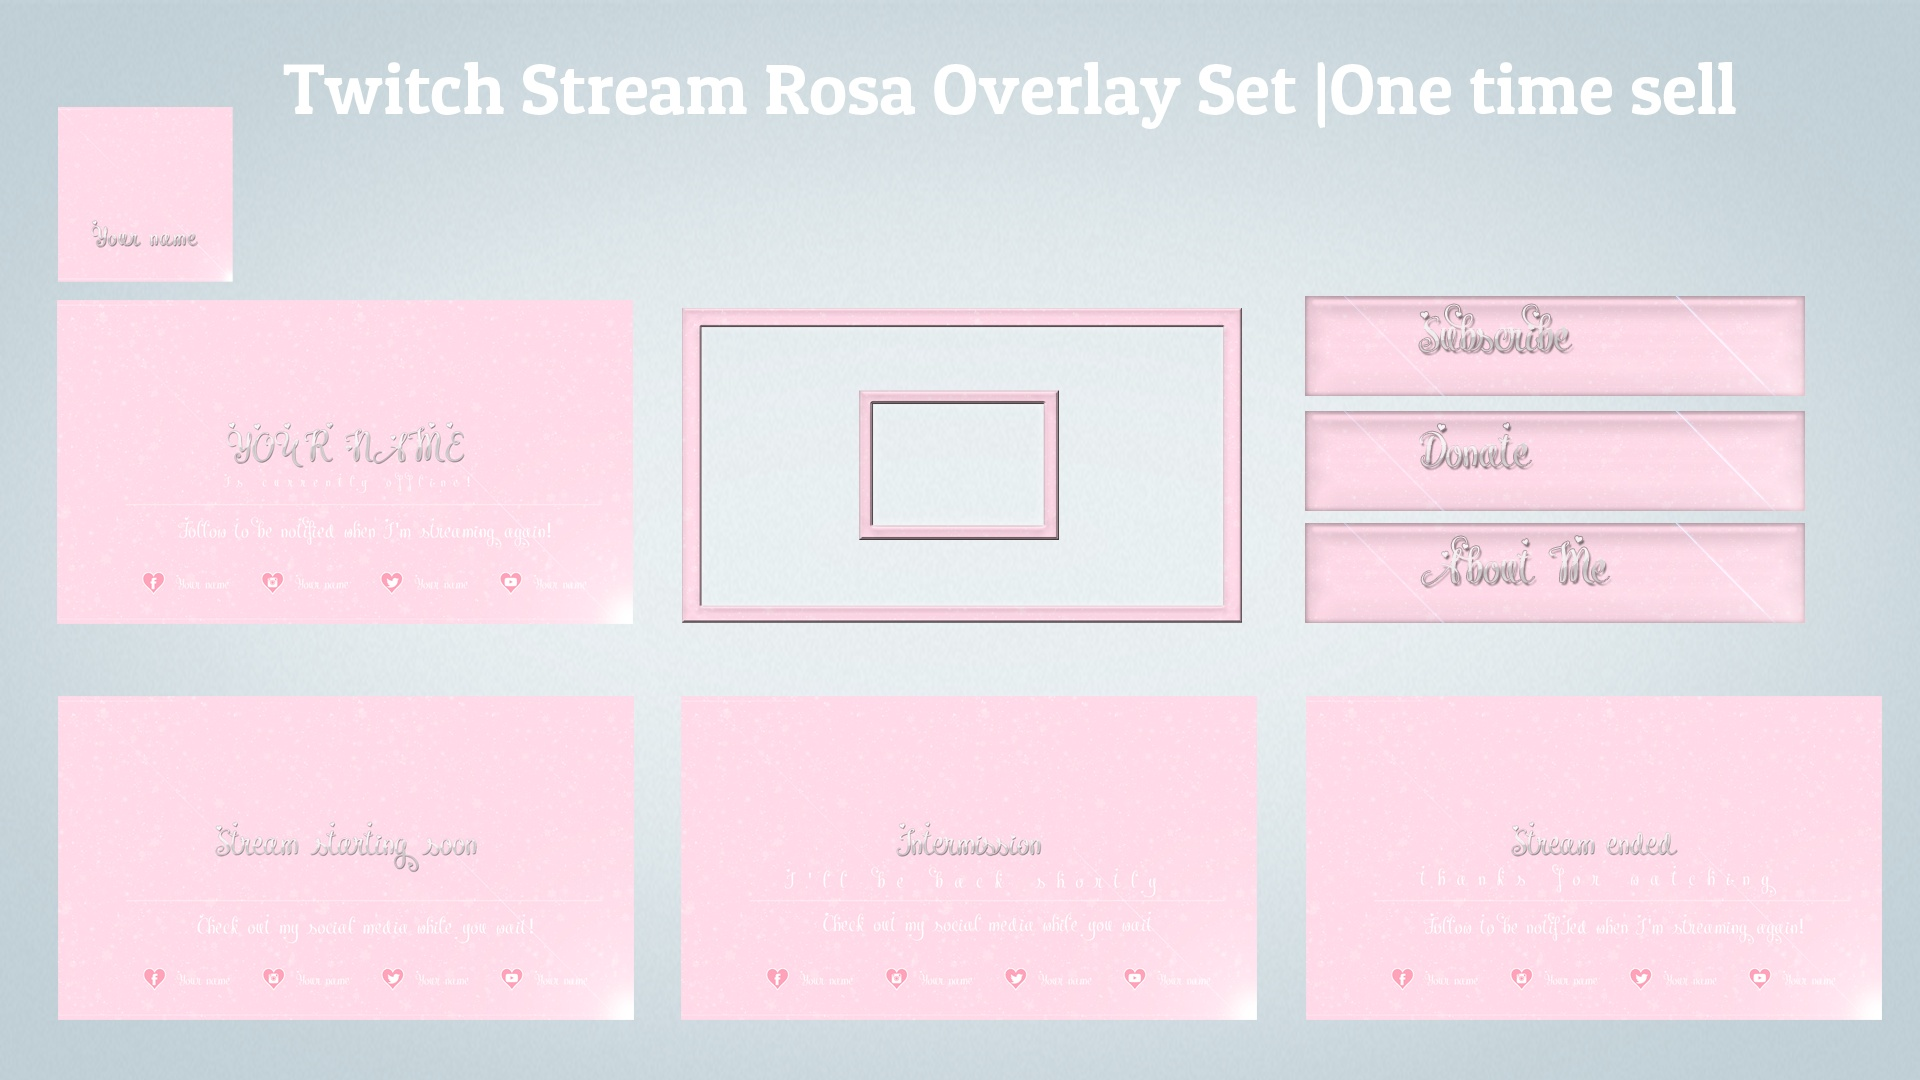 Twitch Stream Rosa Overlay Set one time sell